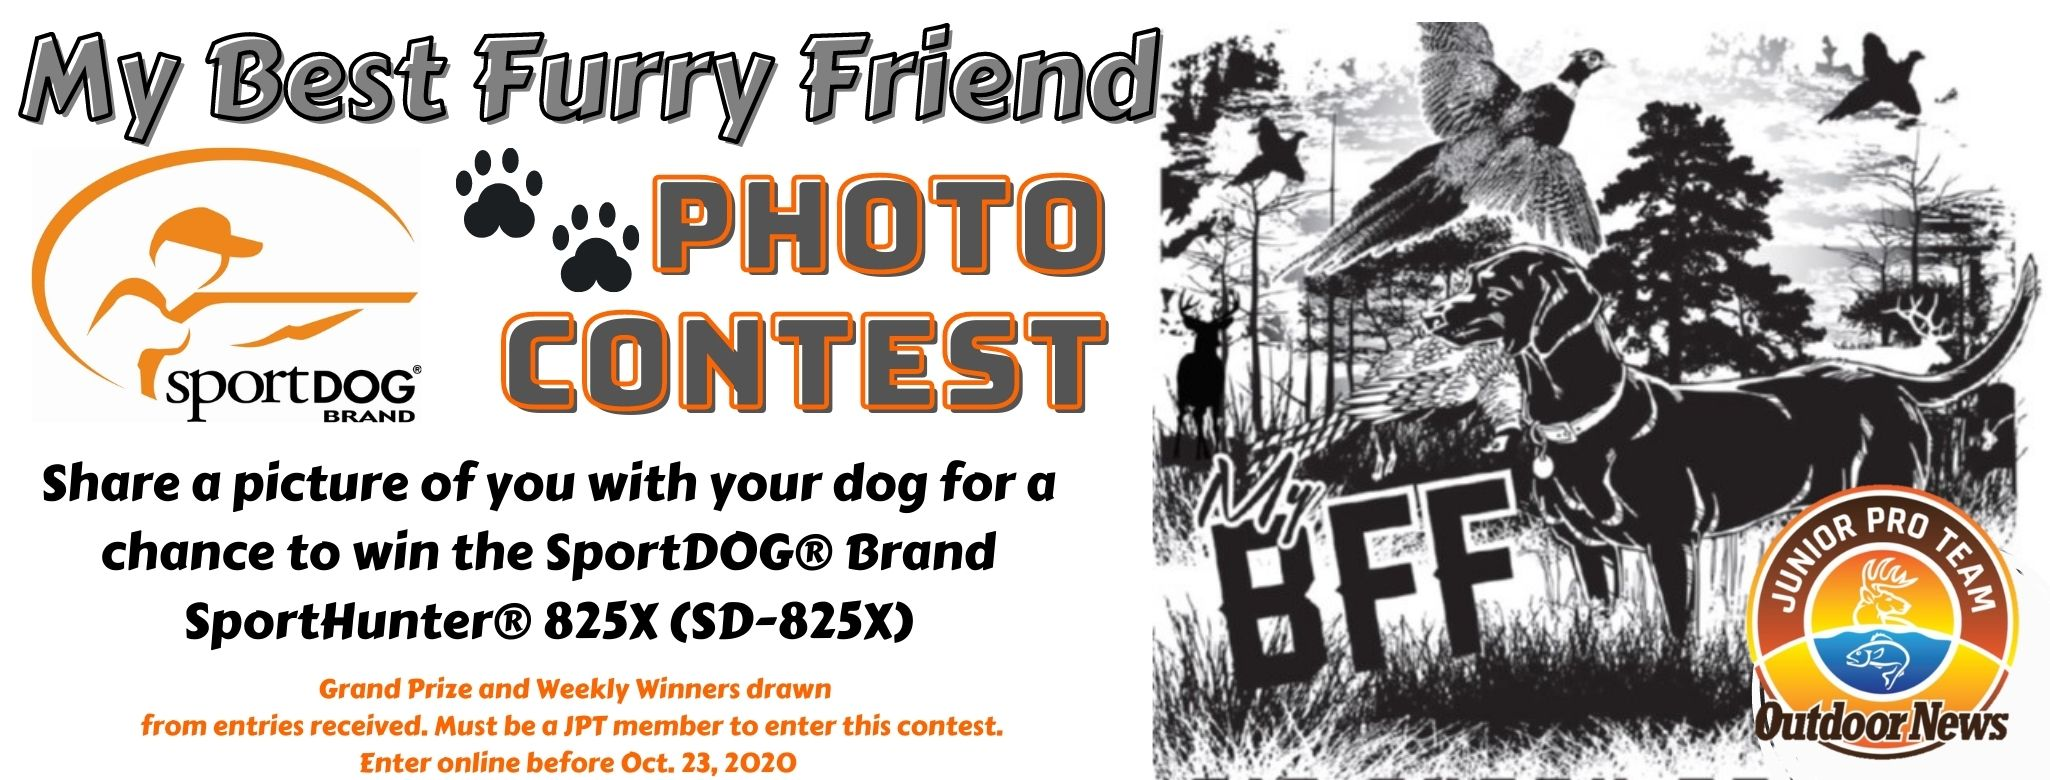 Outdoor News Junior Pro Team Members Only Photo Contest_My Best Furry Friend_Presented by SportDOG Brands